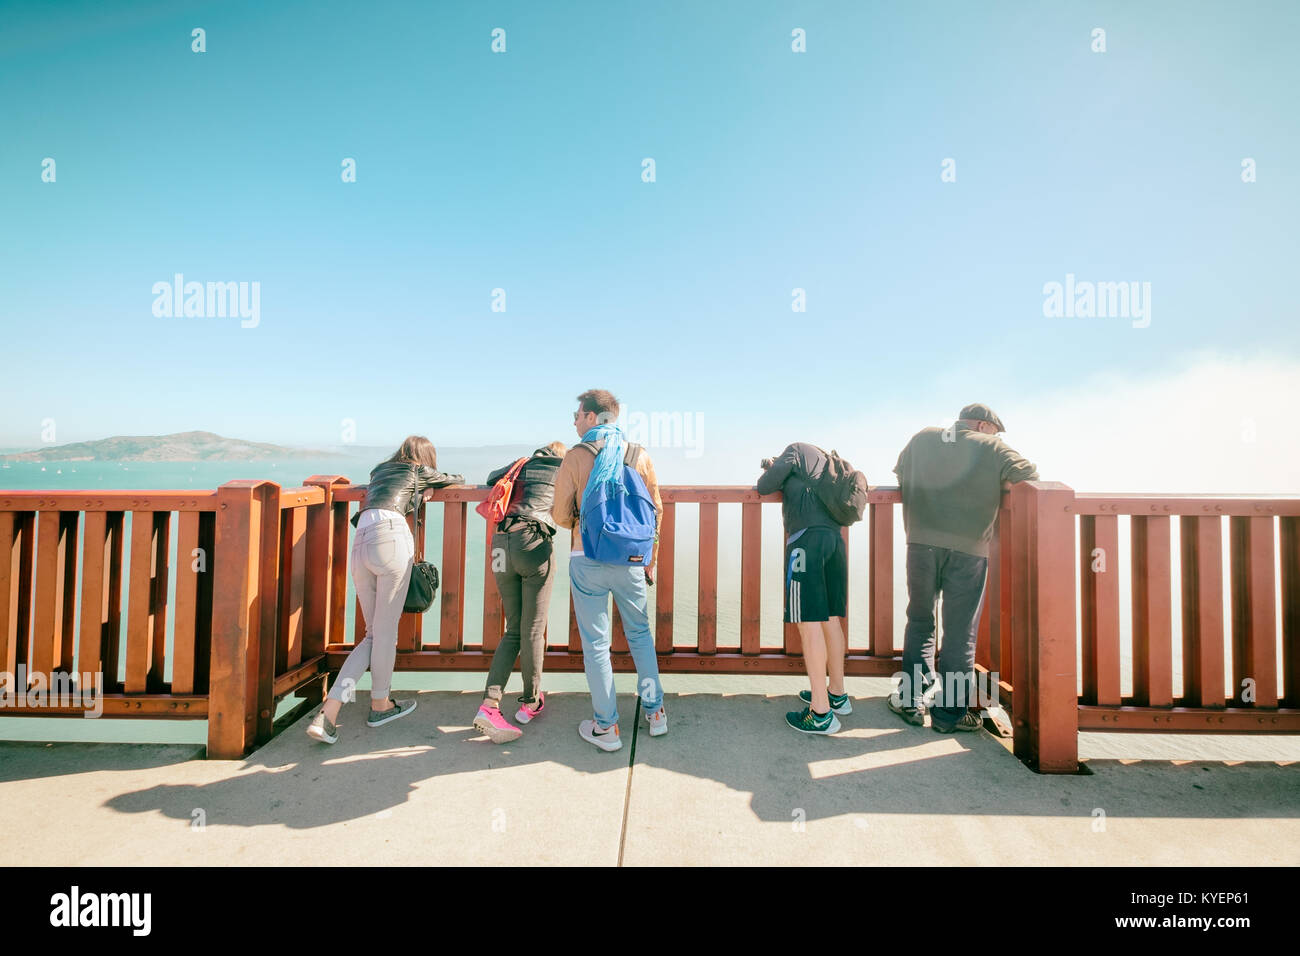 SAN FRANCISCO, CA- Oct. 11, 2015: Golden Gate Bridge people on foot lean over the side rail of a bumpout viewpoint - Stock Image